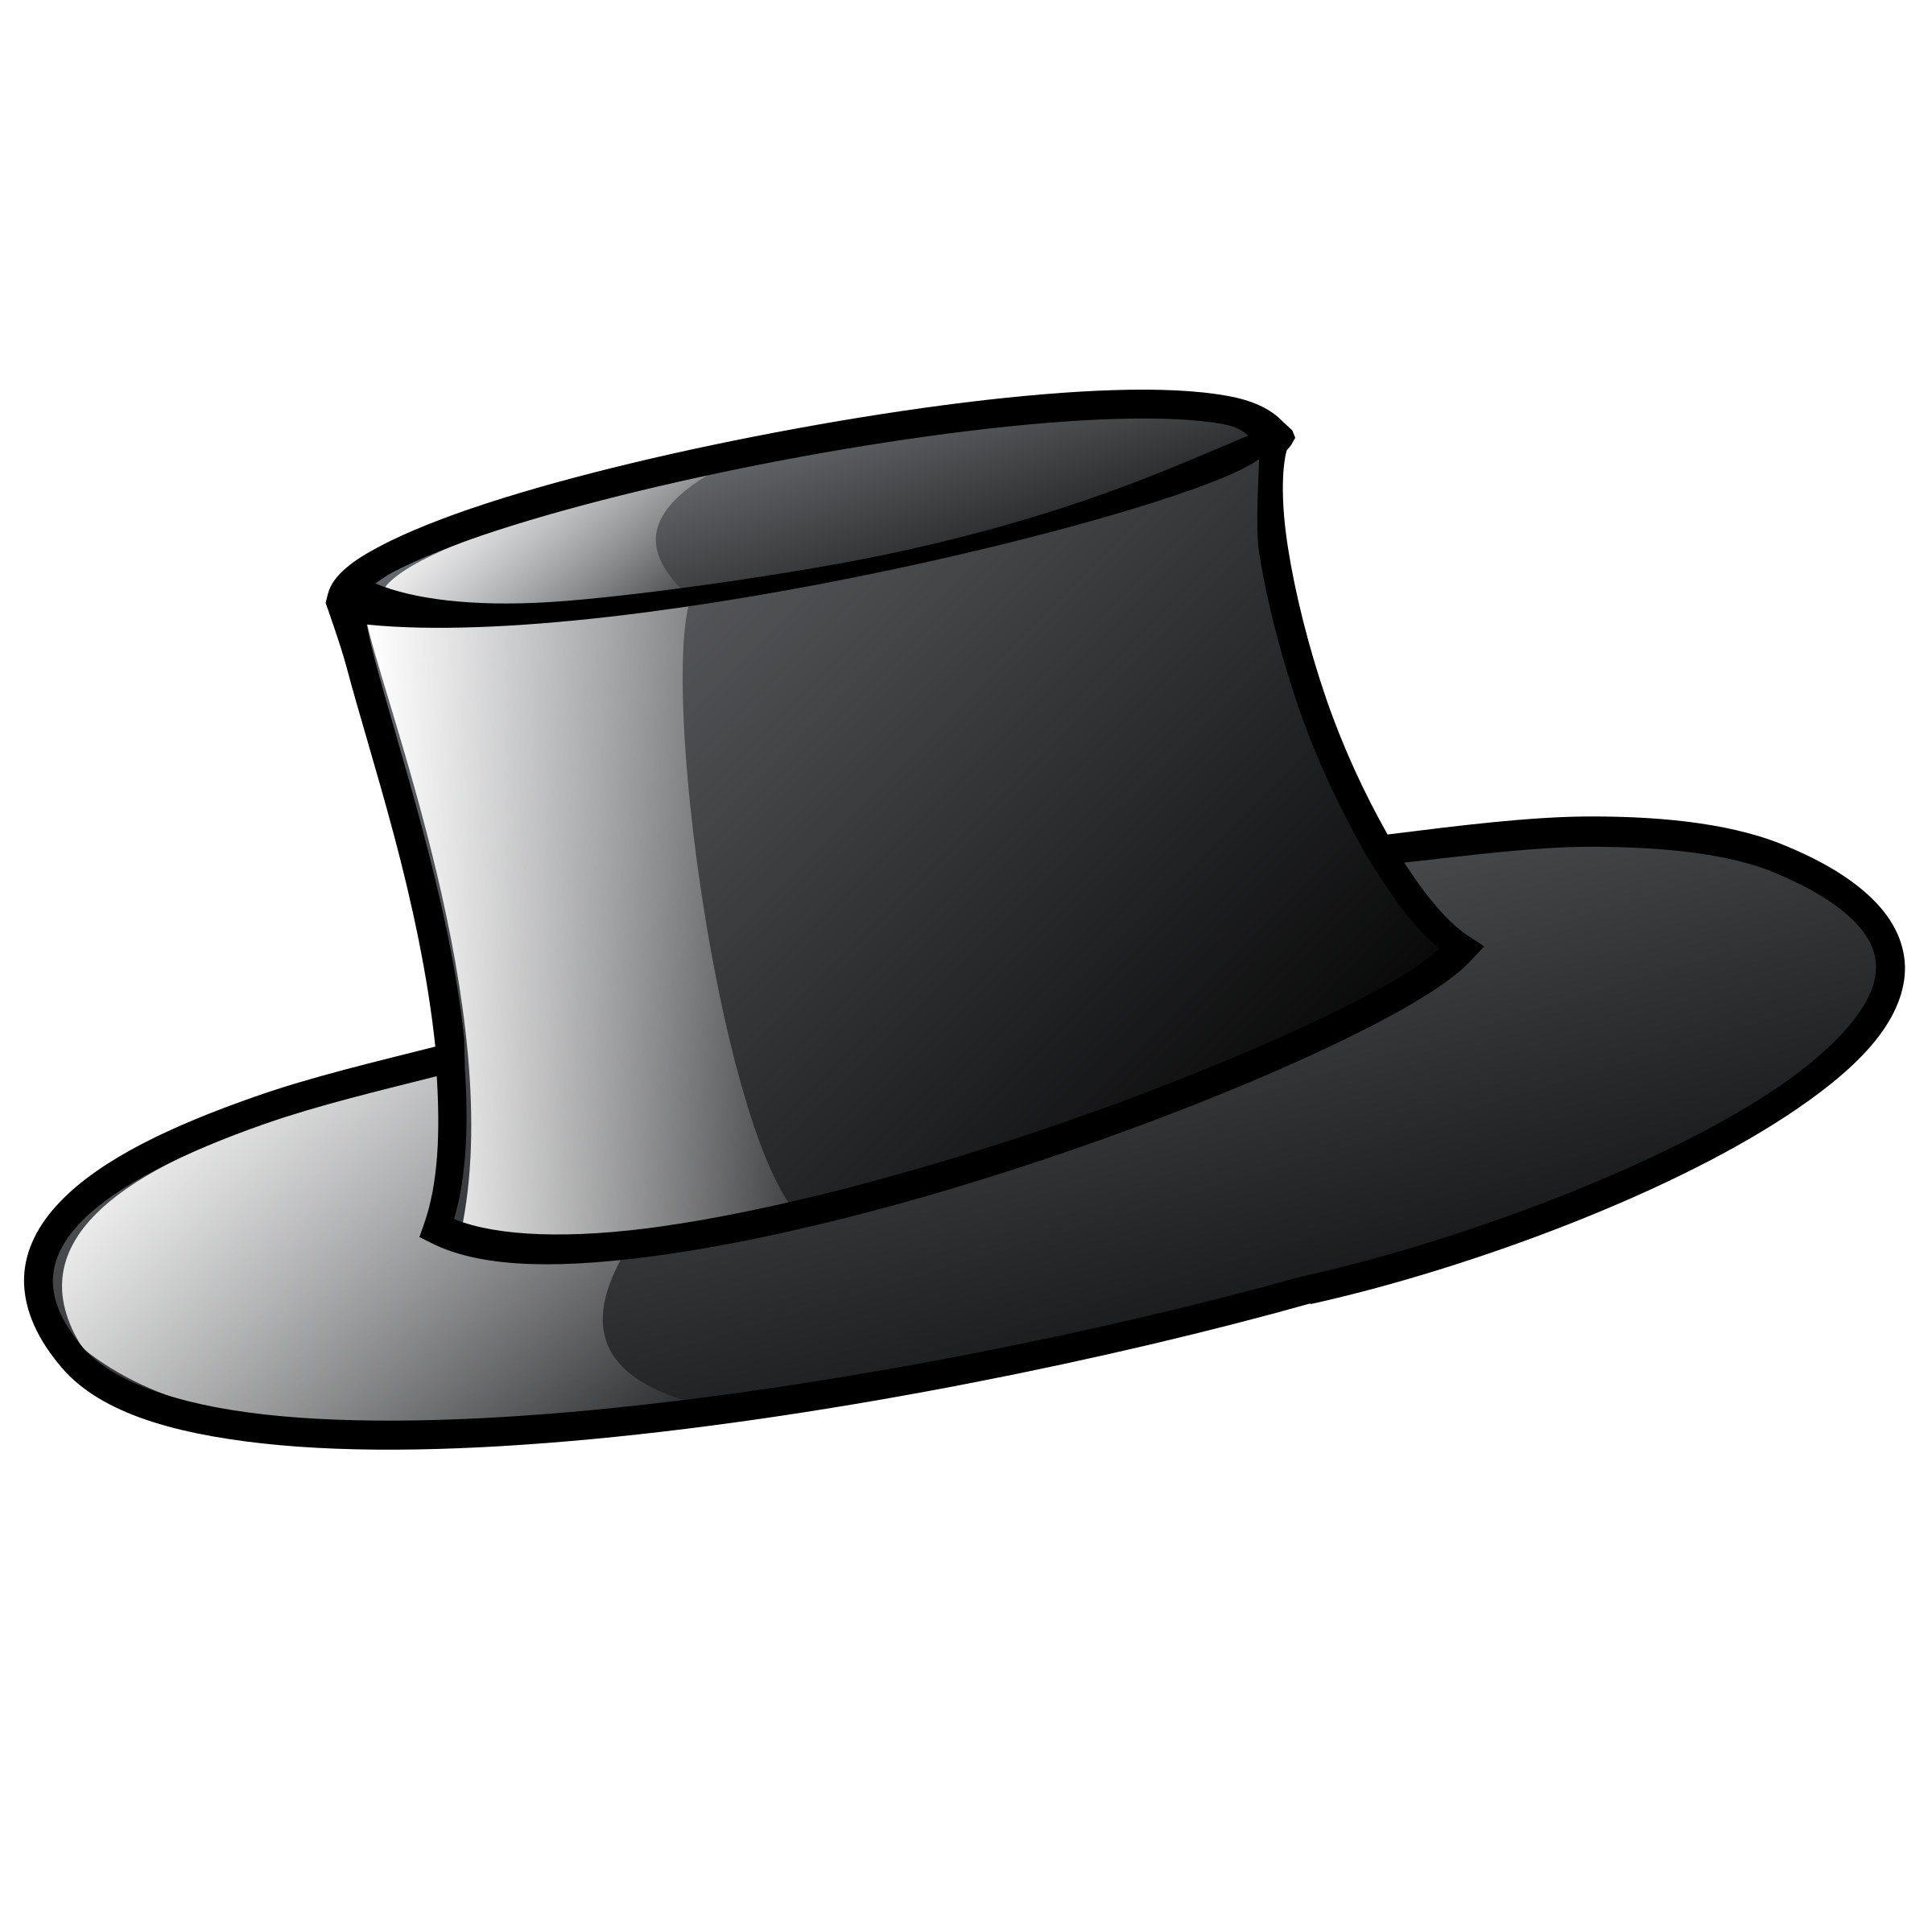 Fedora clipart man's hat. Top icons png free